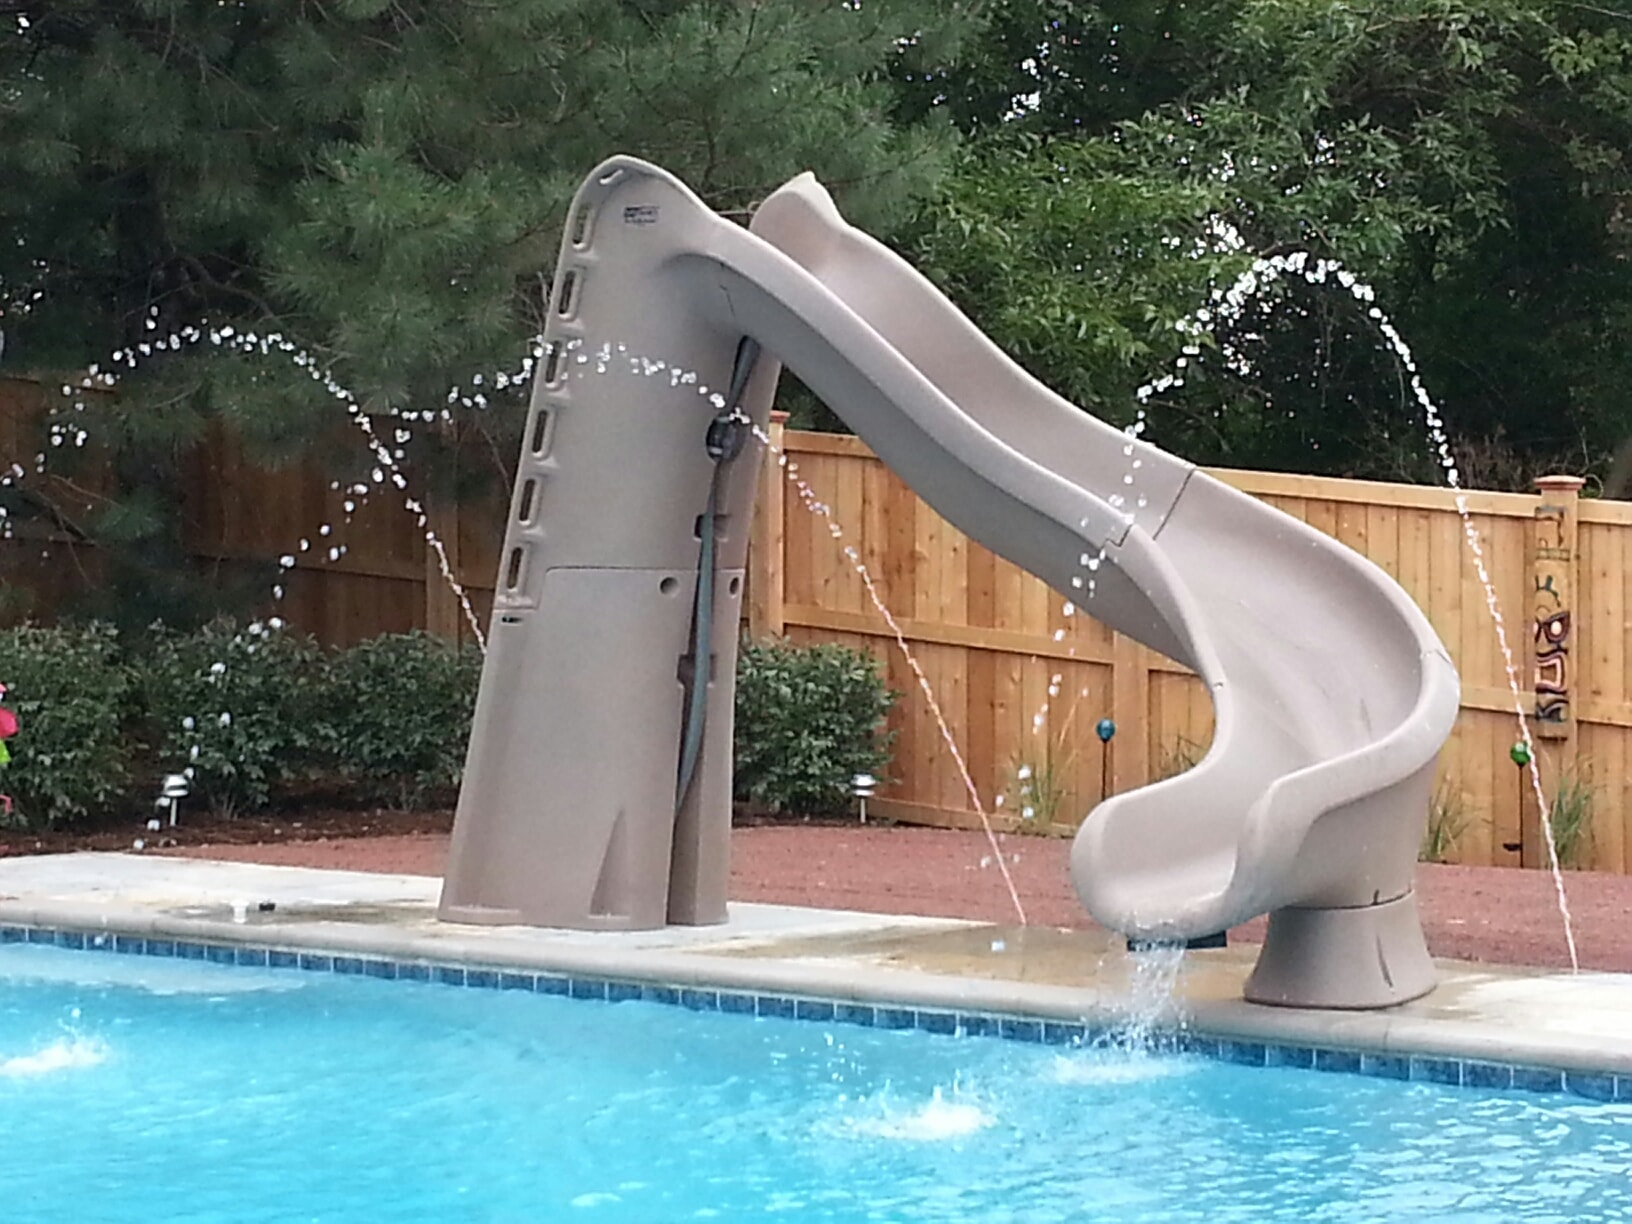 Swimming Pool Slides Danna Pools Inc